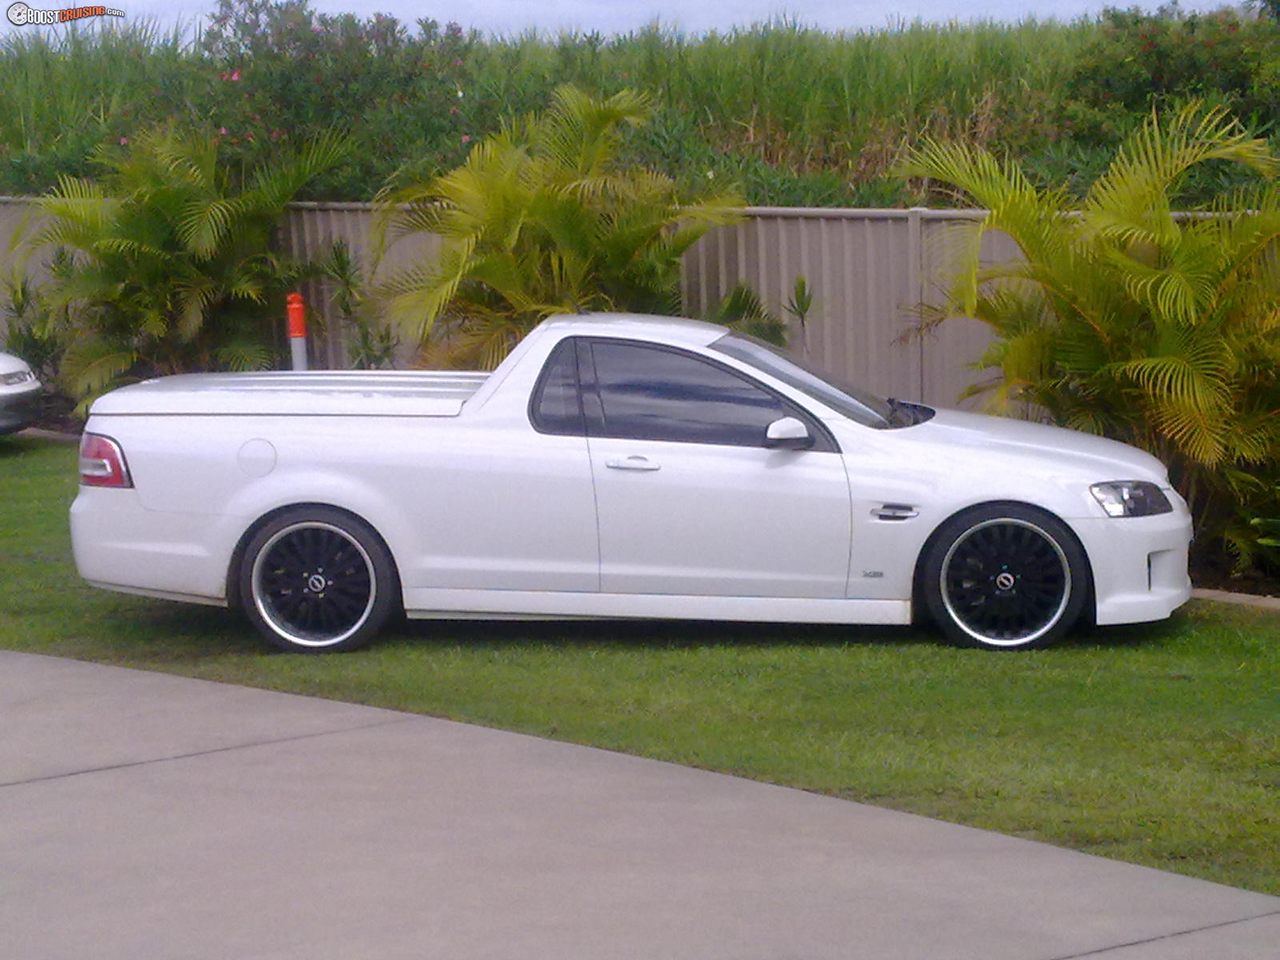 holden ute images #13